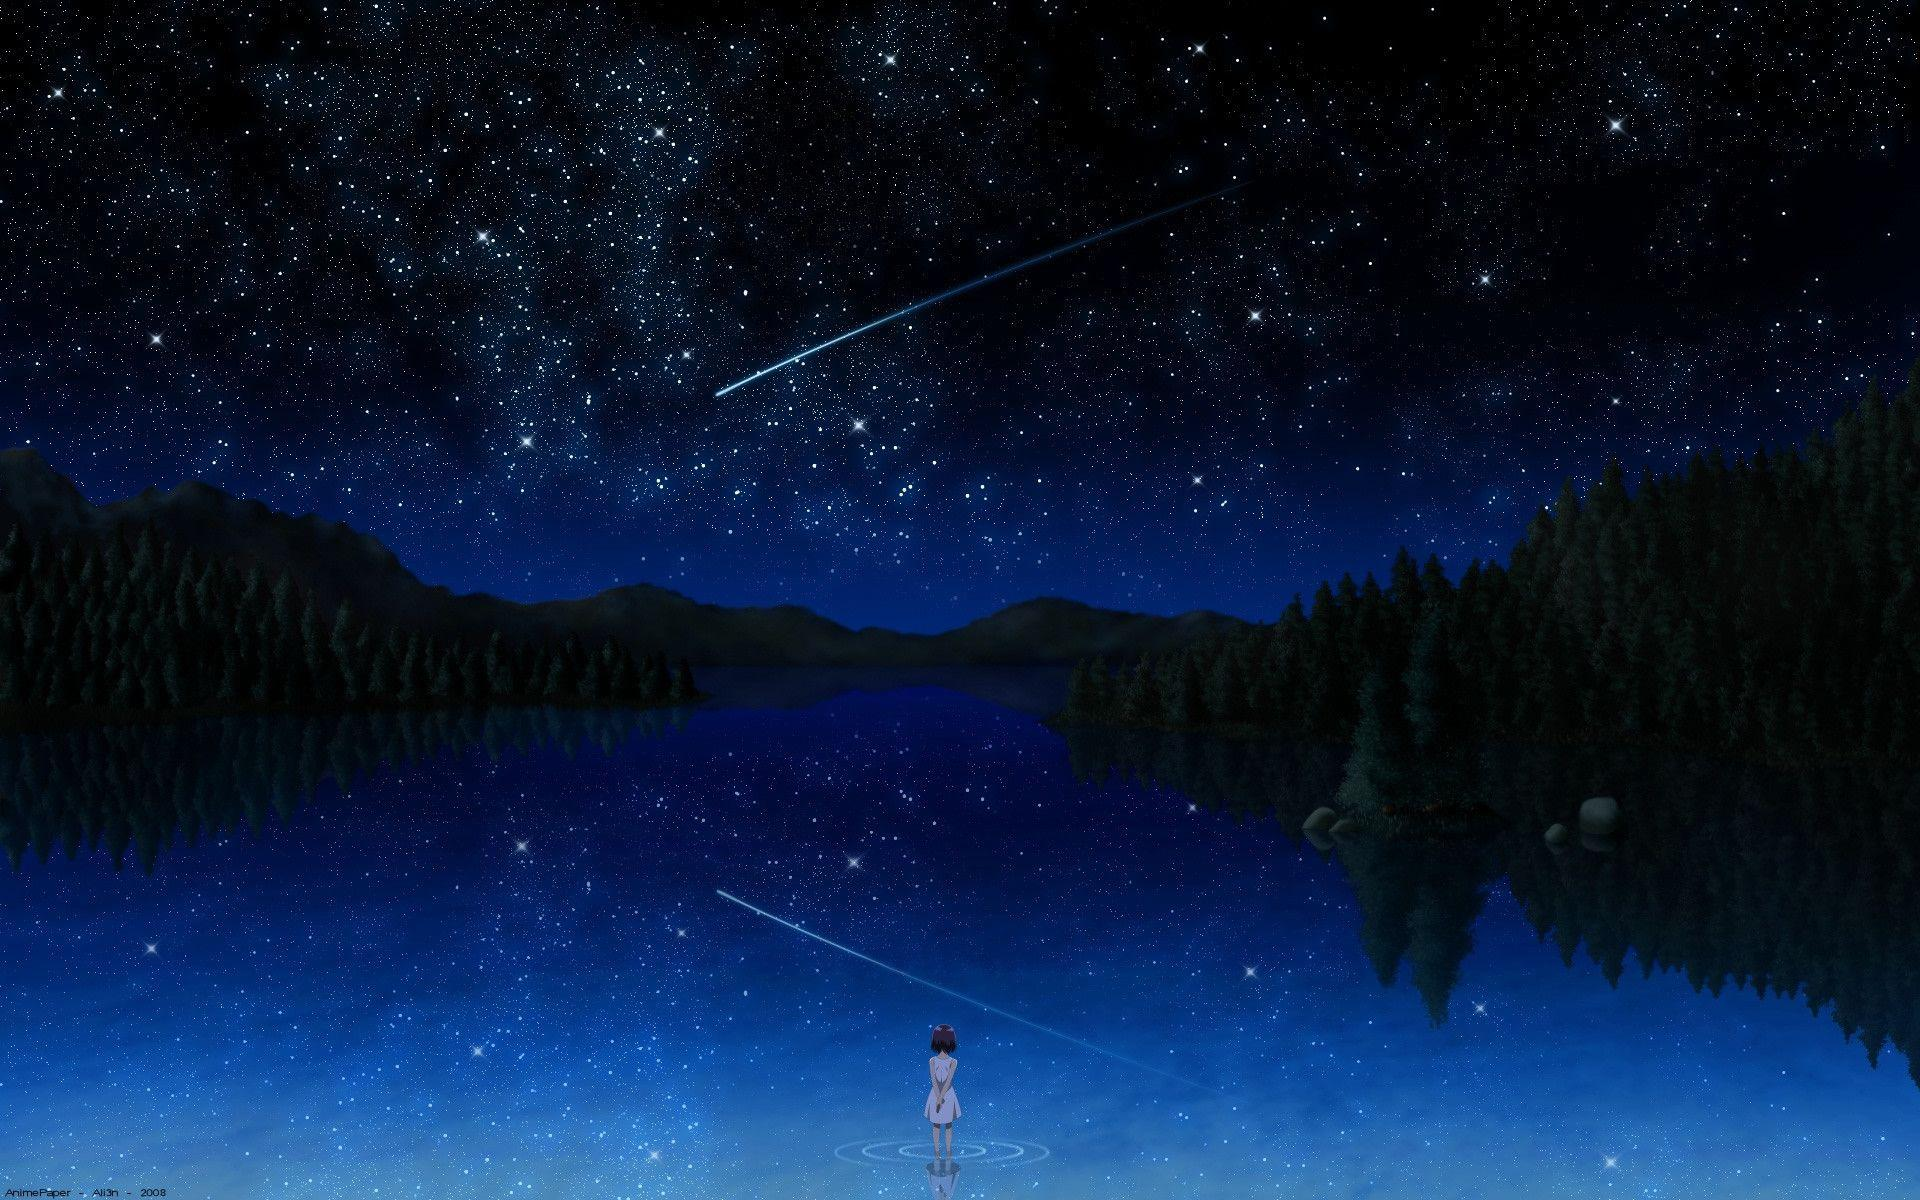 Meteor Shower Wallpaper Image Group (45+)